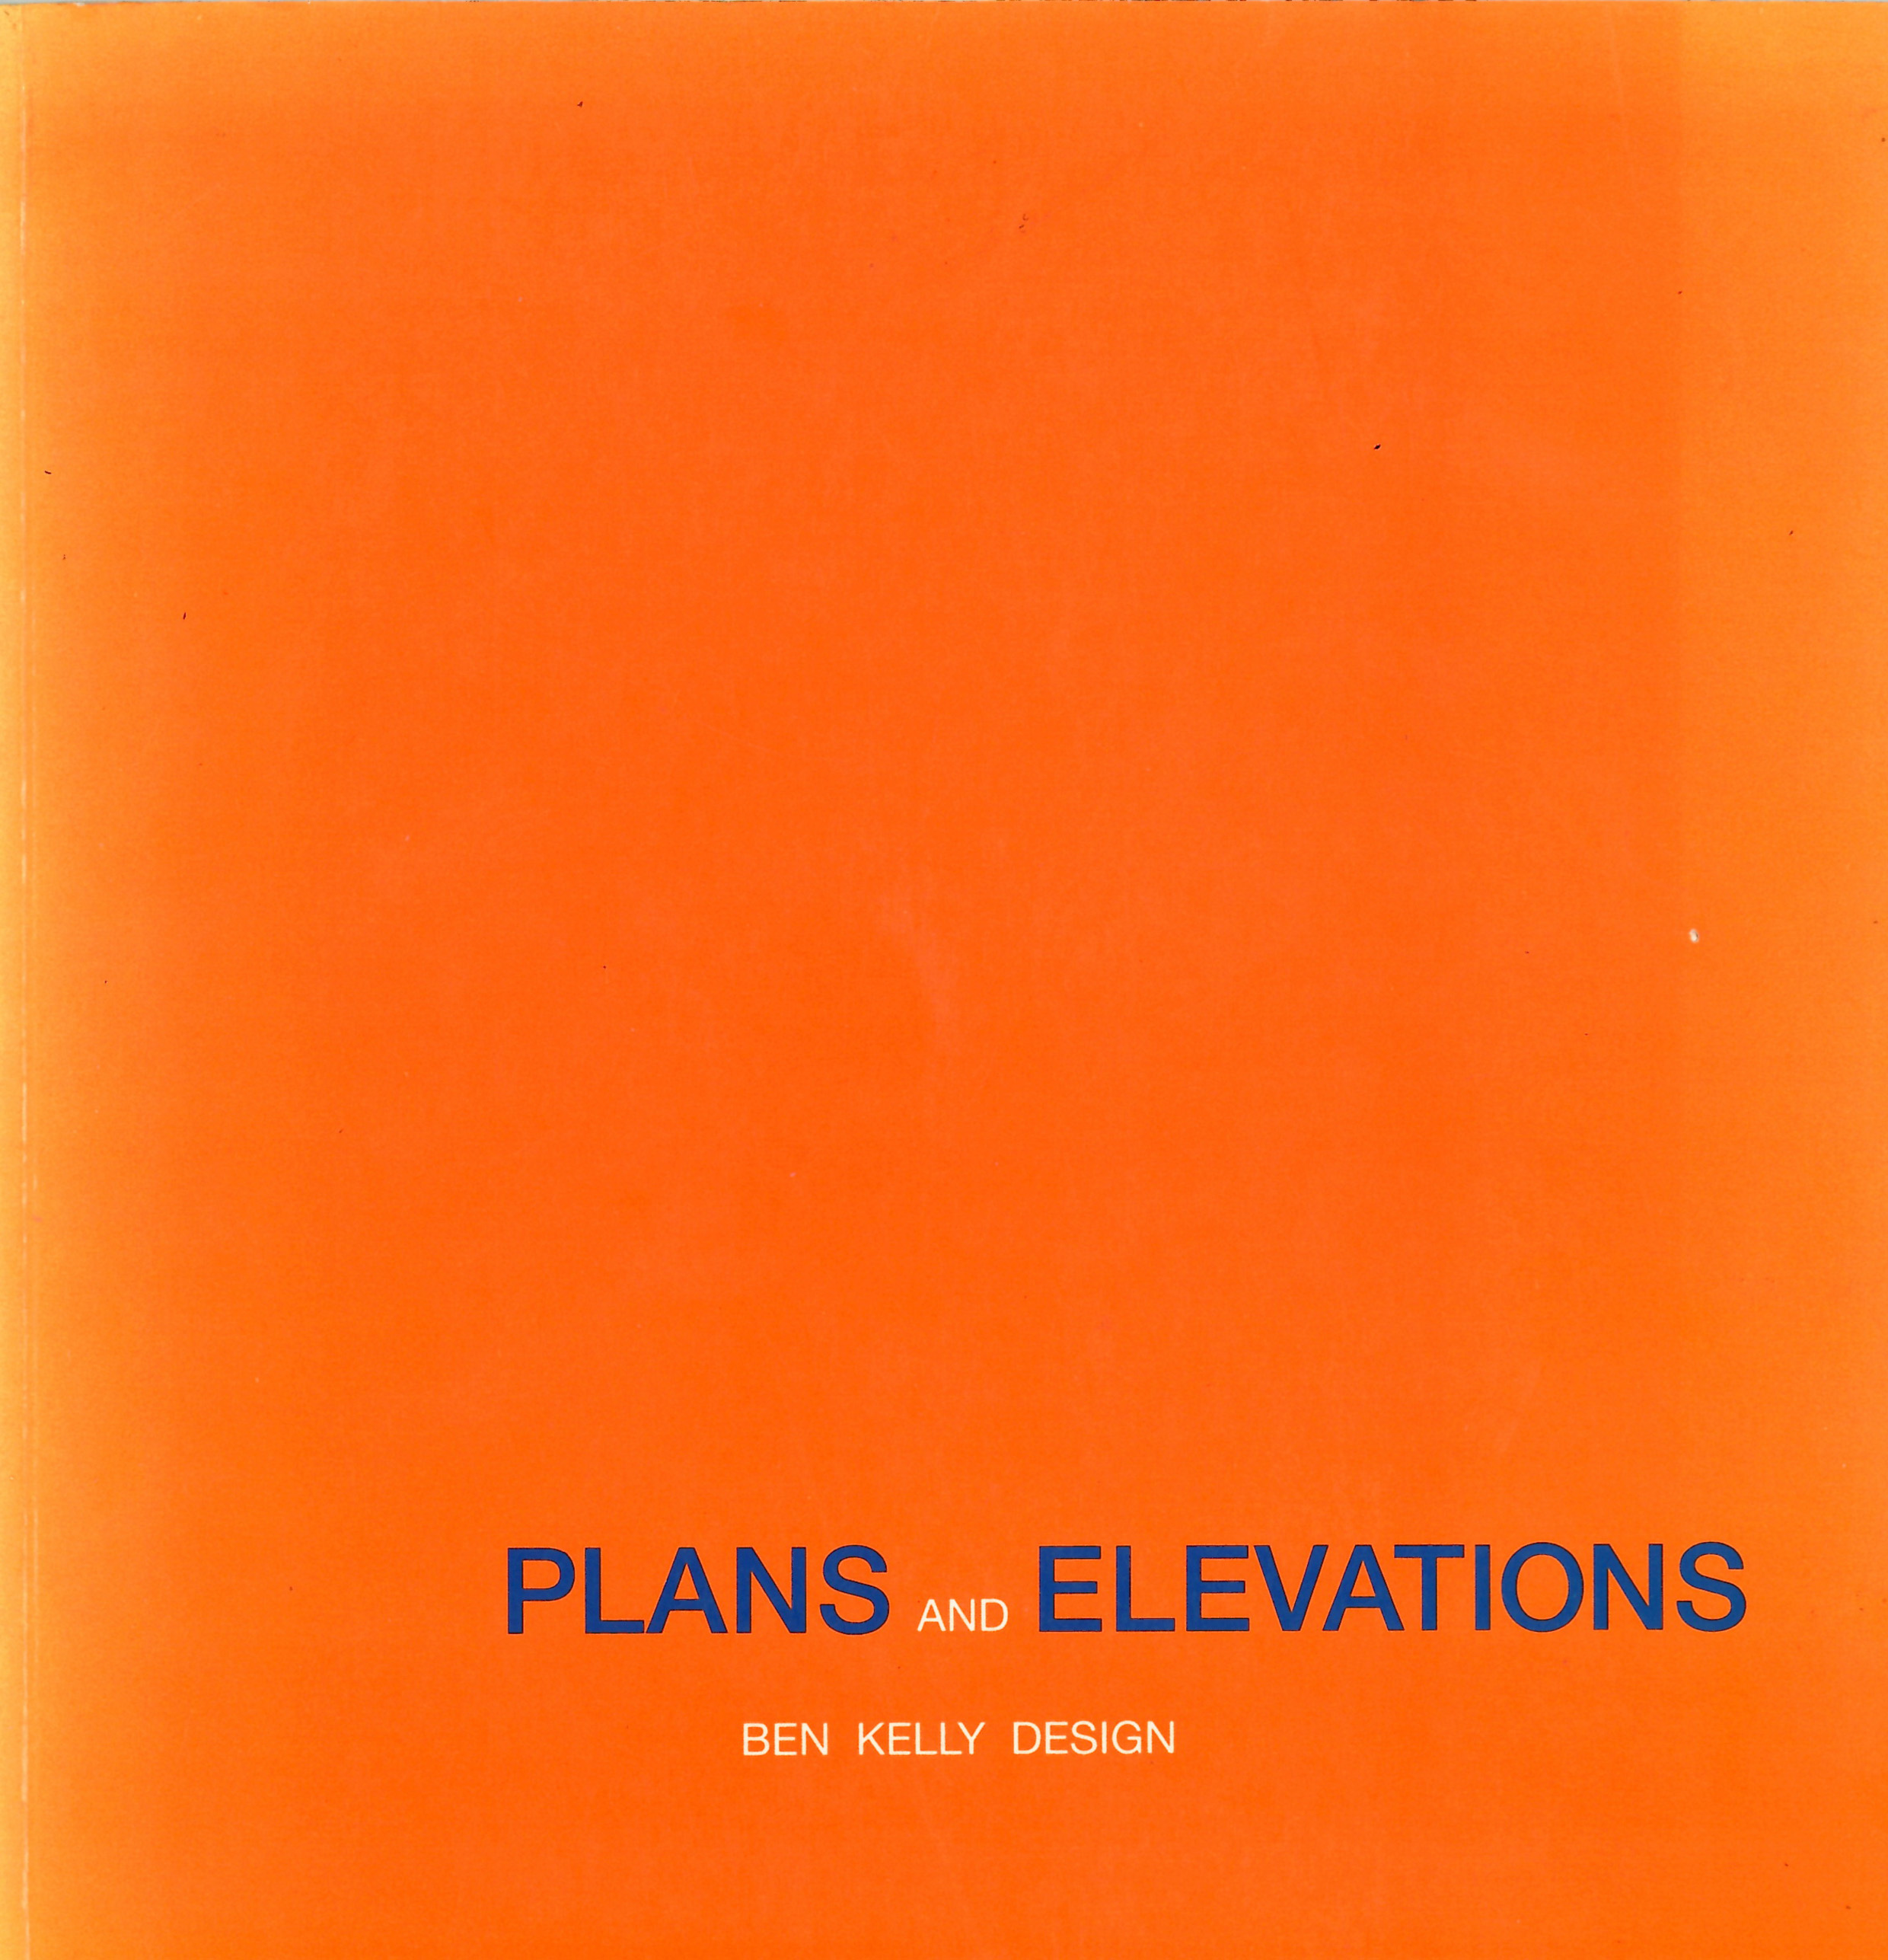 BOTB_Plans and Elevations Cover.jpg